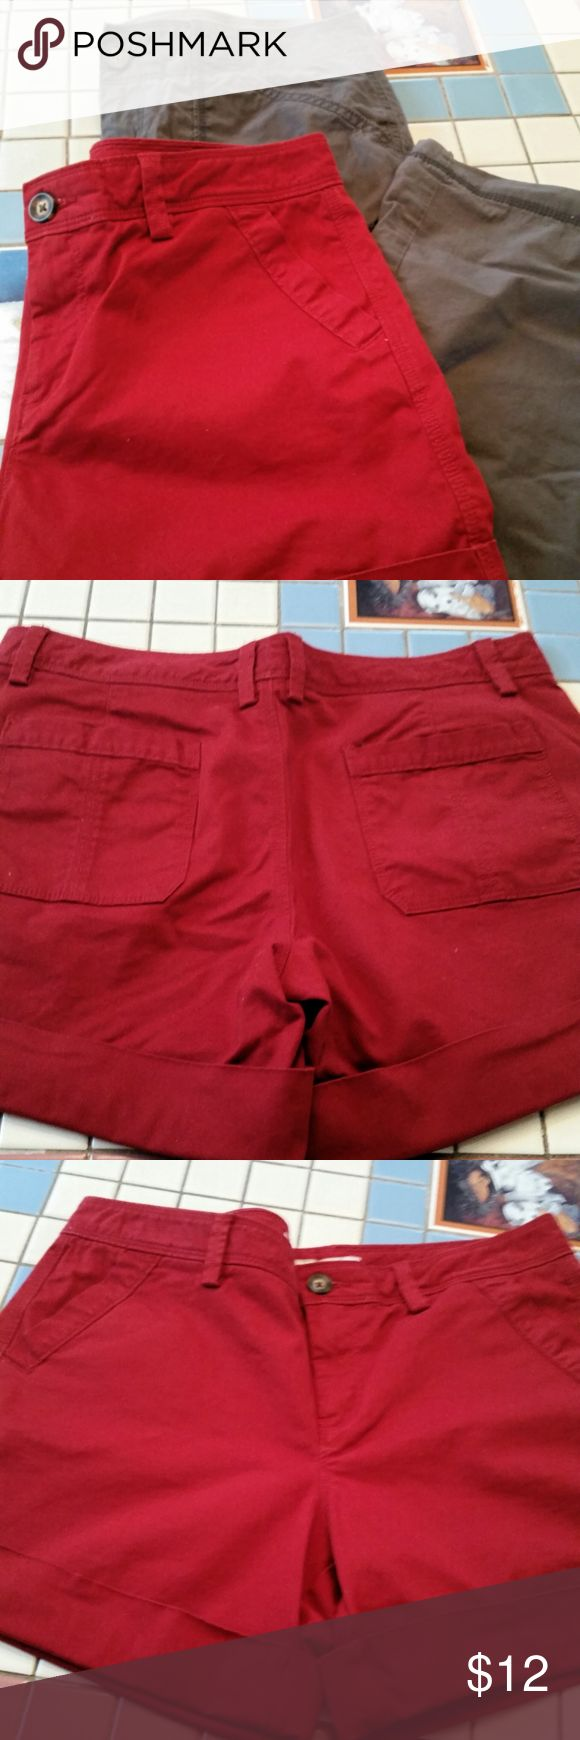 Old Navy Shorts & Cargo Pants Bundle Red shorts in brushed cotton (very nice quality) with side and back pockets. Worn only a few times, so still in very good condition. Cargo pants with lots of pockets, low rise, with tabs to roll up legs and make capris/shorts. Pants are gently worn, no holes or tears, still in good condition. Both are size 10 by Old Navy. Bundle price includes both! Comes from nonsmoking home, and I ship quickly! ;-) Old Navy Pants